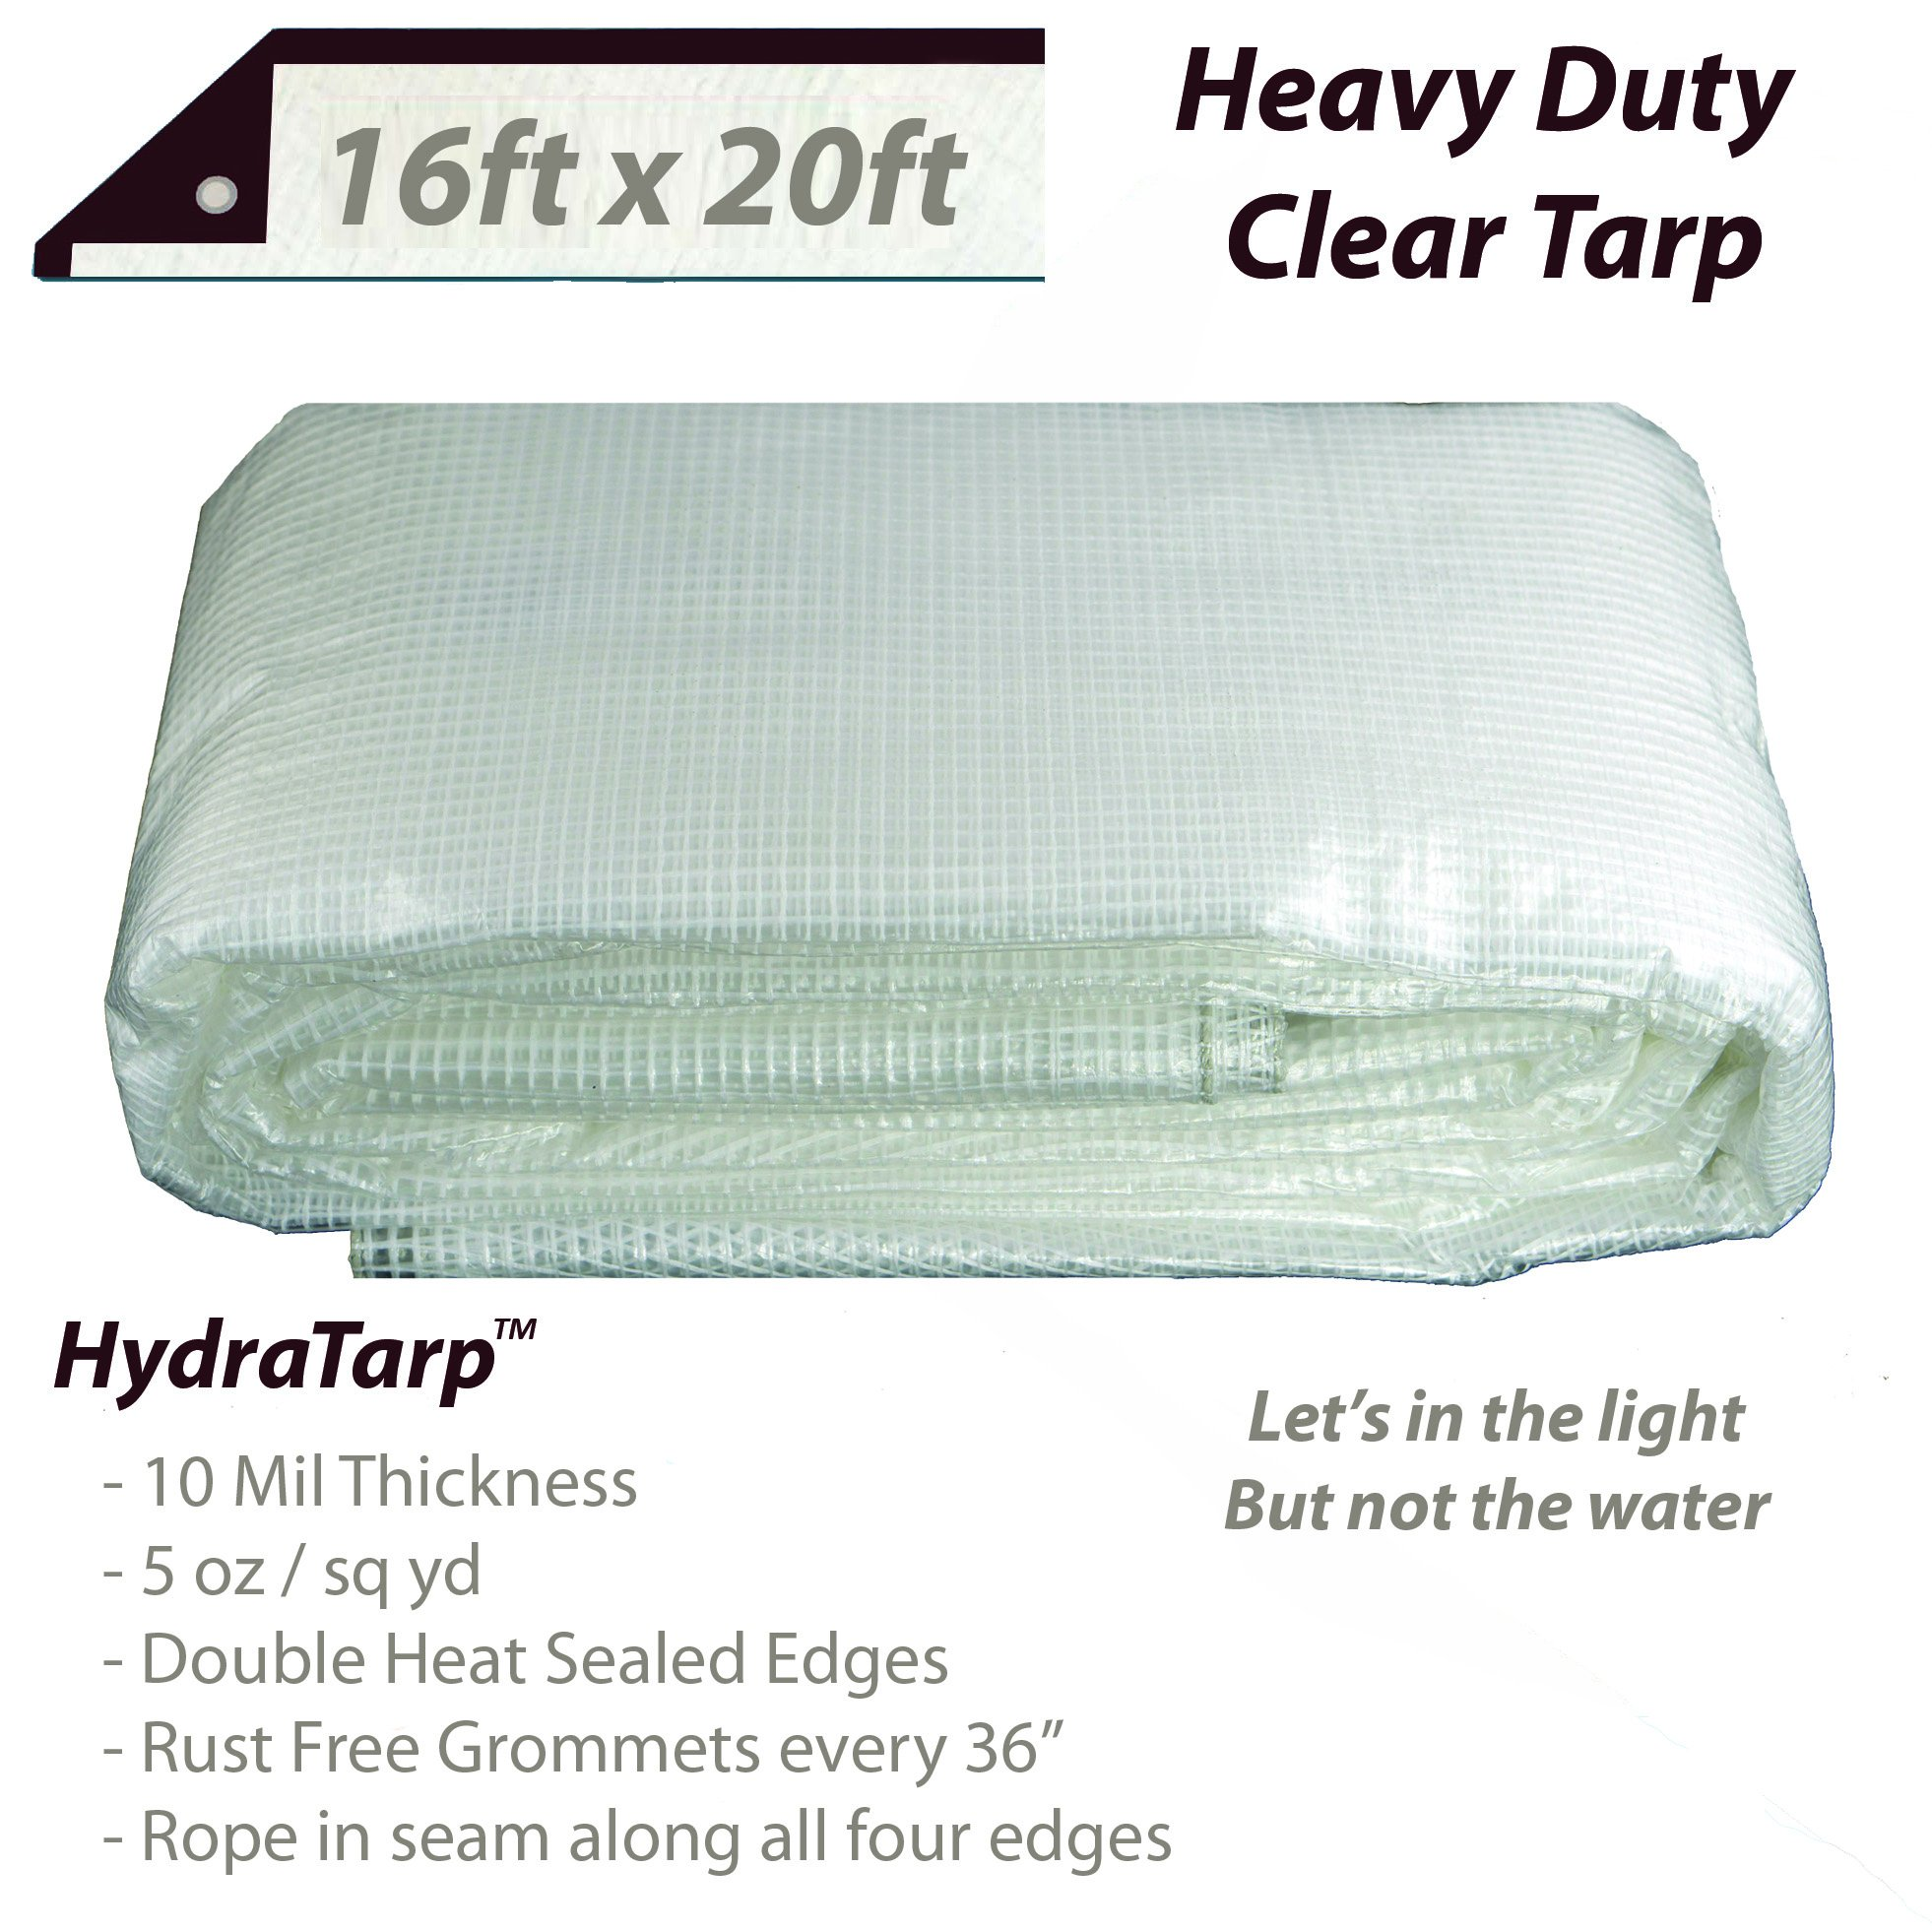 Heavy Duty Clear Greenhouse Tarp - 16ft x 20ft - Premium Quality 10 mil with 3x3 Mesh Weave for Added Strength - UV Coated Protection for Outdoor Camping RV Truck and Trailers by Watershed Innovations